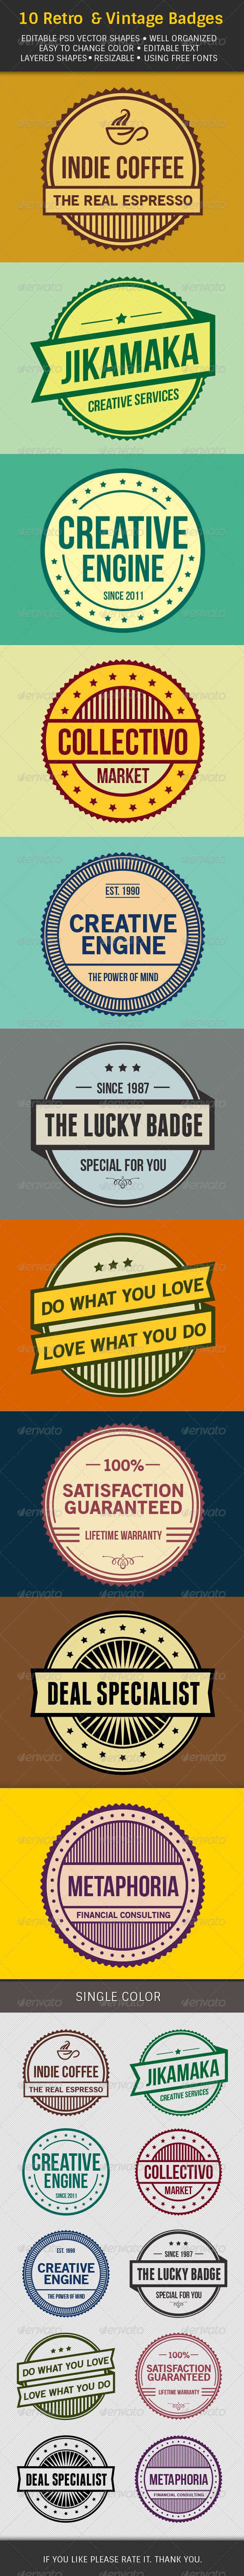 GraphicRiver 10 Retro & Vintage Badges 7163724